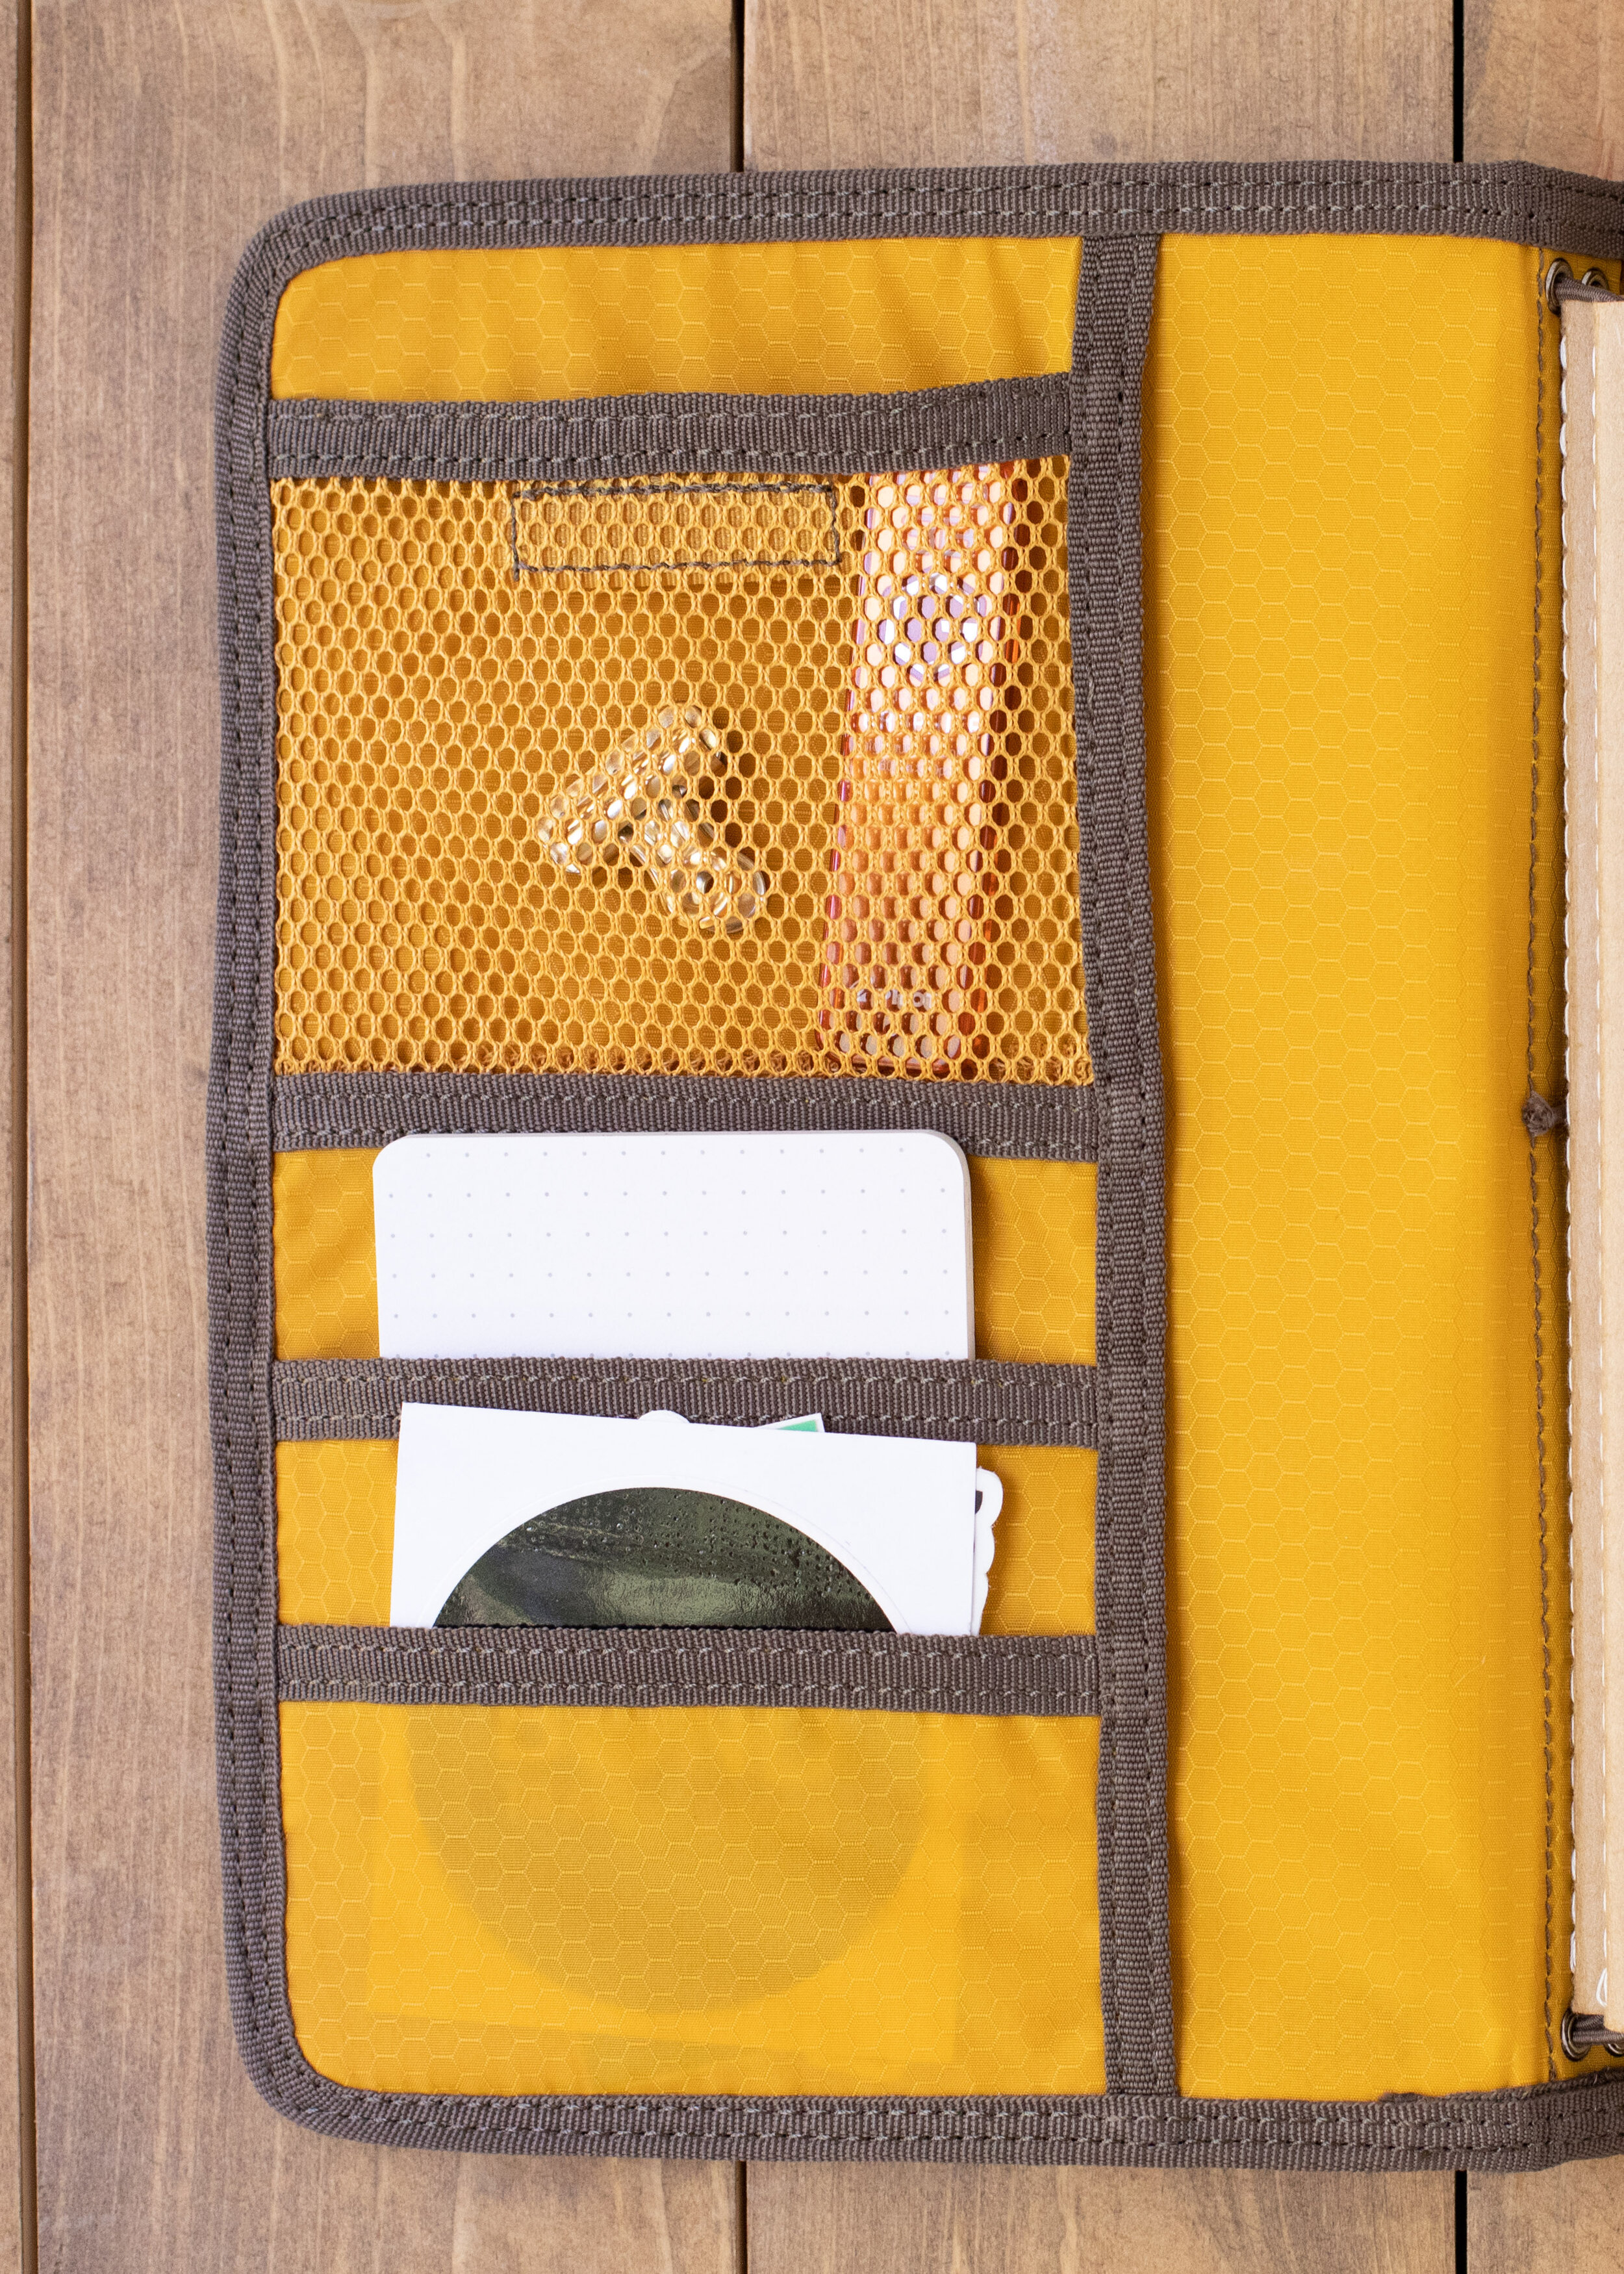 Inside Cover - The inside cover has a mesh pocket on the top with a velcro closure, as well as two other pockets on the bottom. I currently have clips, pencil lead and page flags in my mesh pocket, and post-its and stickers in the bottom pockets.